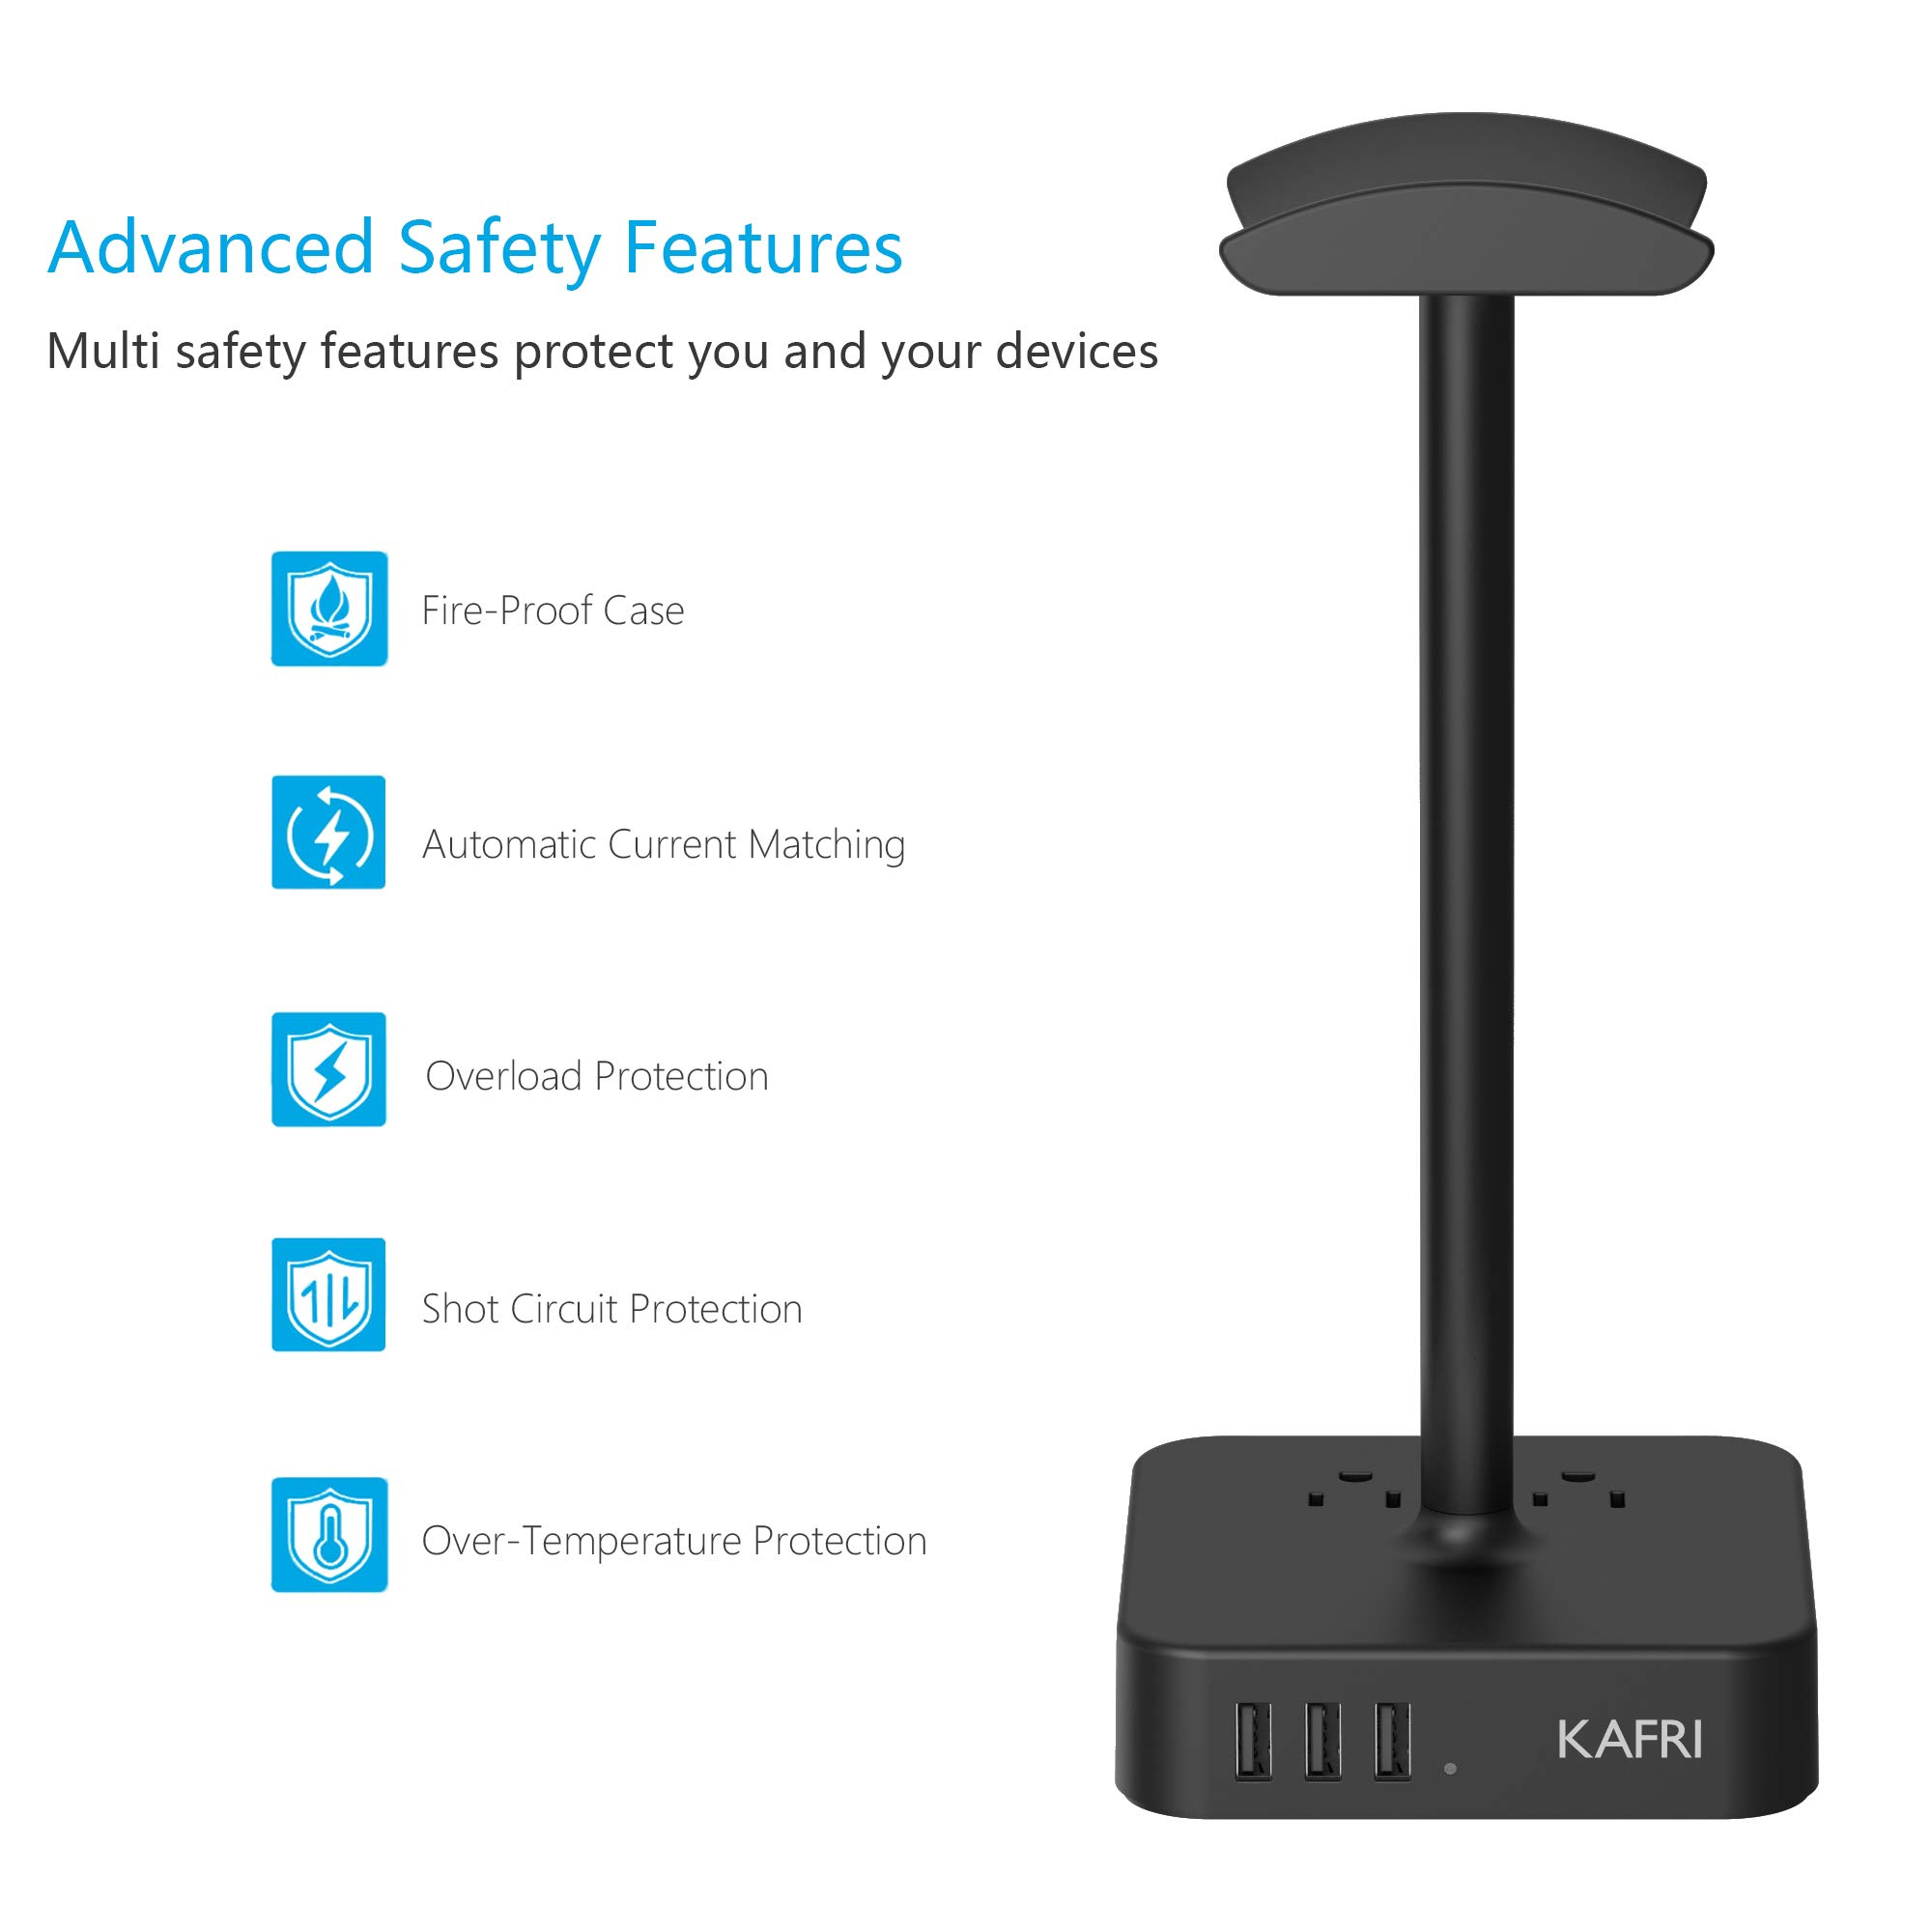 KAFRI Headphone Stand with USB Charger Desk Gaming Headset Holder Hanger Rack with 3 USB Charging Port and 2 AC Outlet - Suitable for Gamer Desktop Table Wireless Earphone Accessories Boyfriend Gift by KAFRI (Image #4)